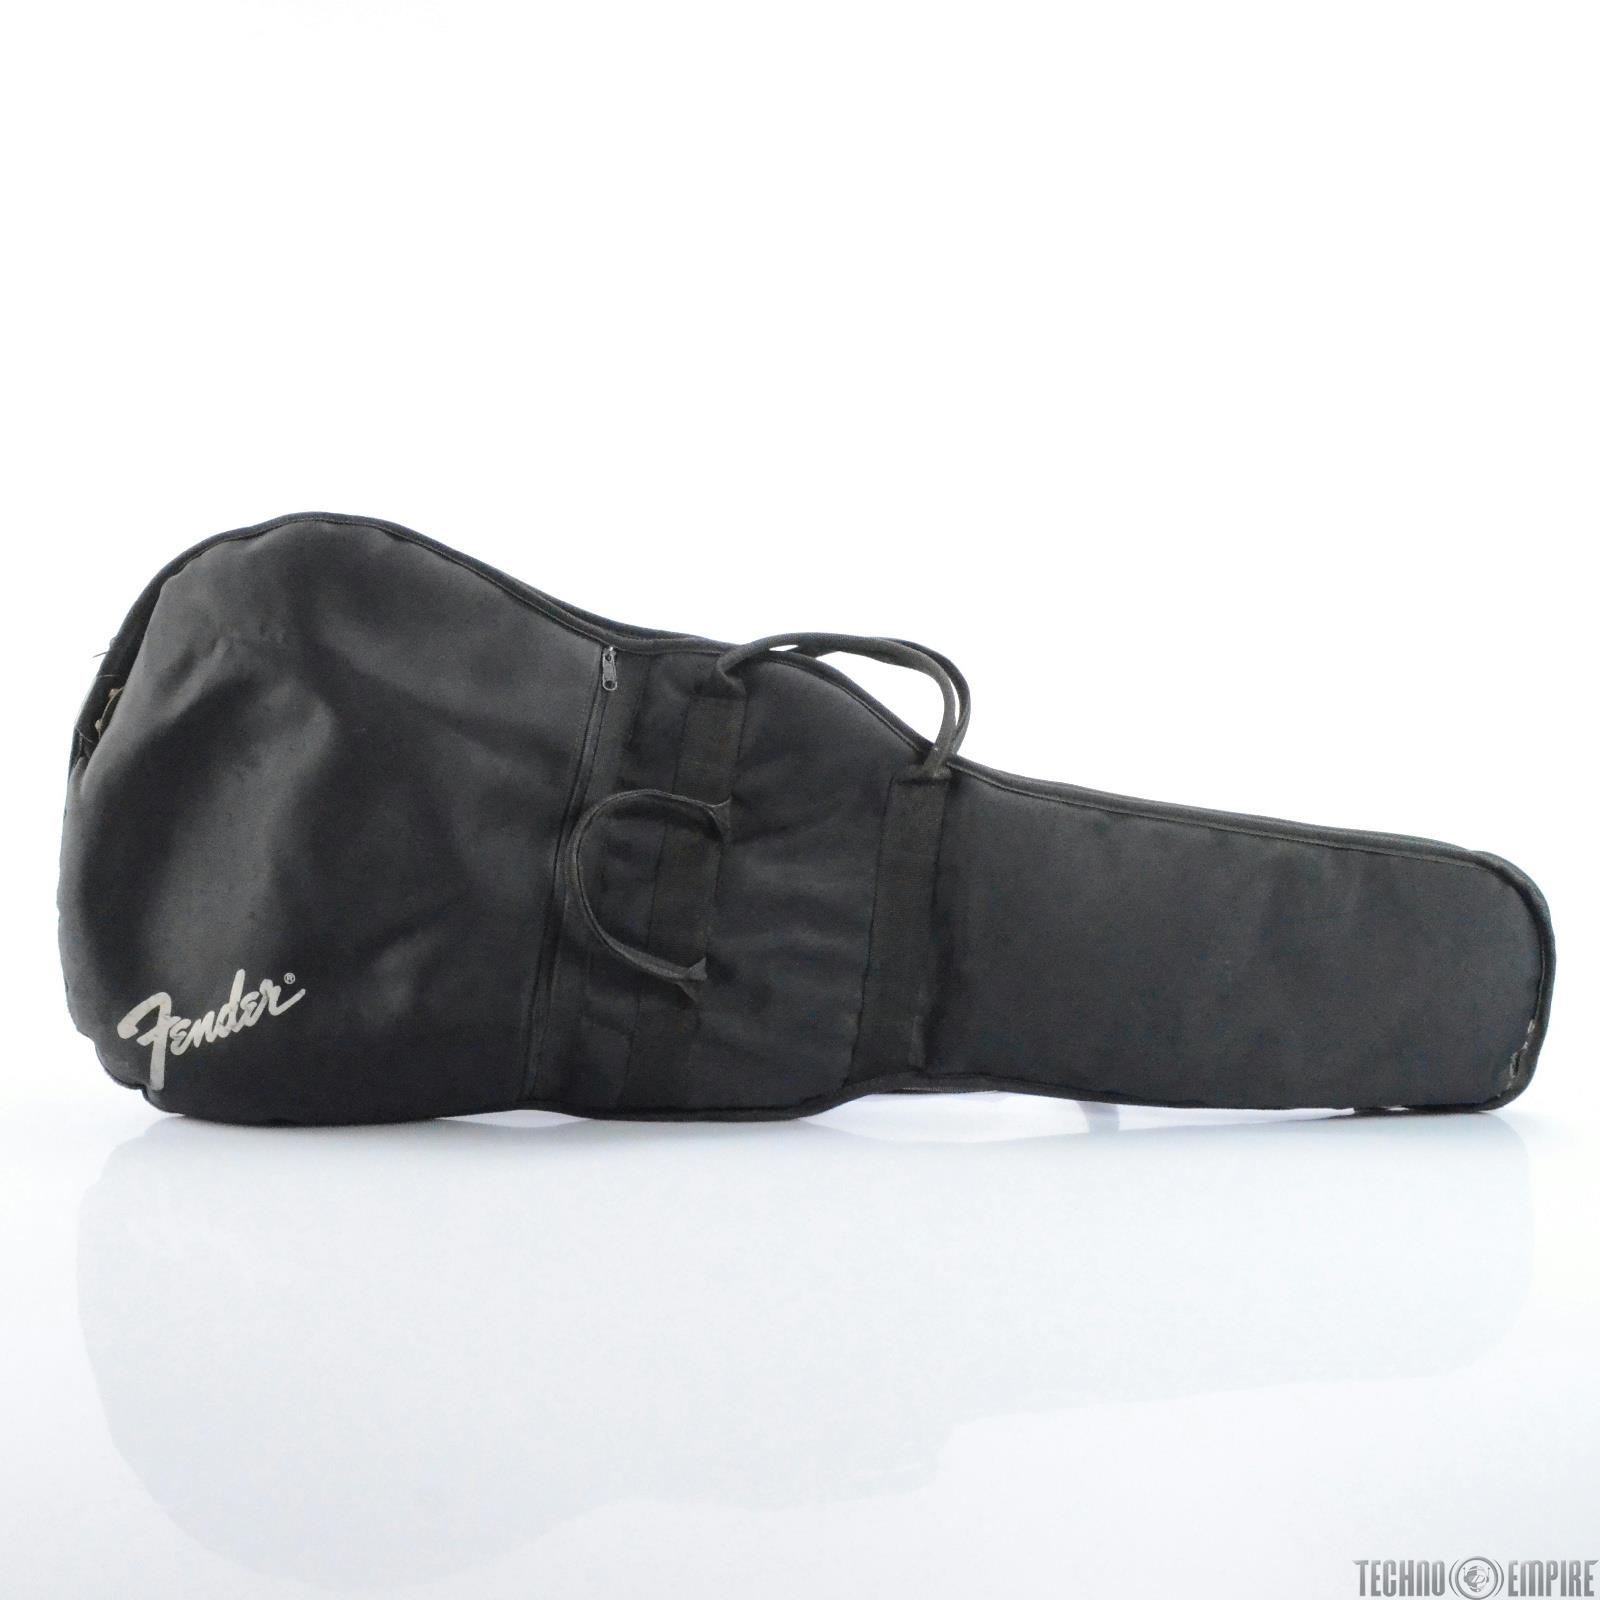 Fender Electric Guitar Gig Bag with Shoulder Strap Owned by Robben Ford #27971